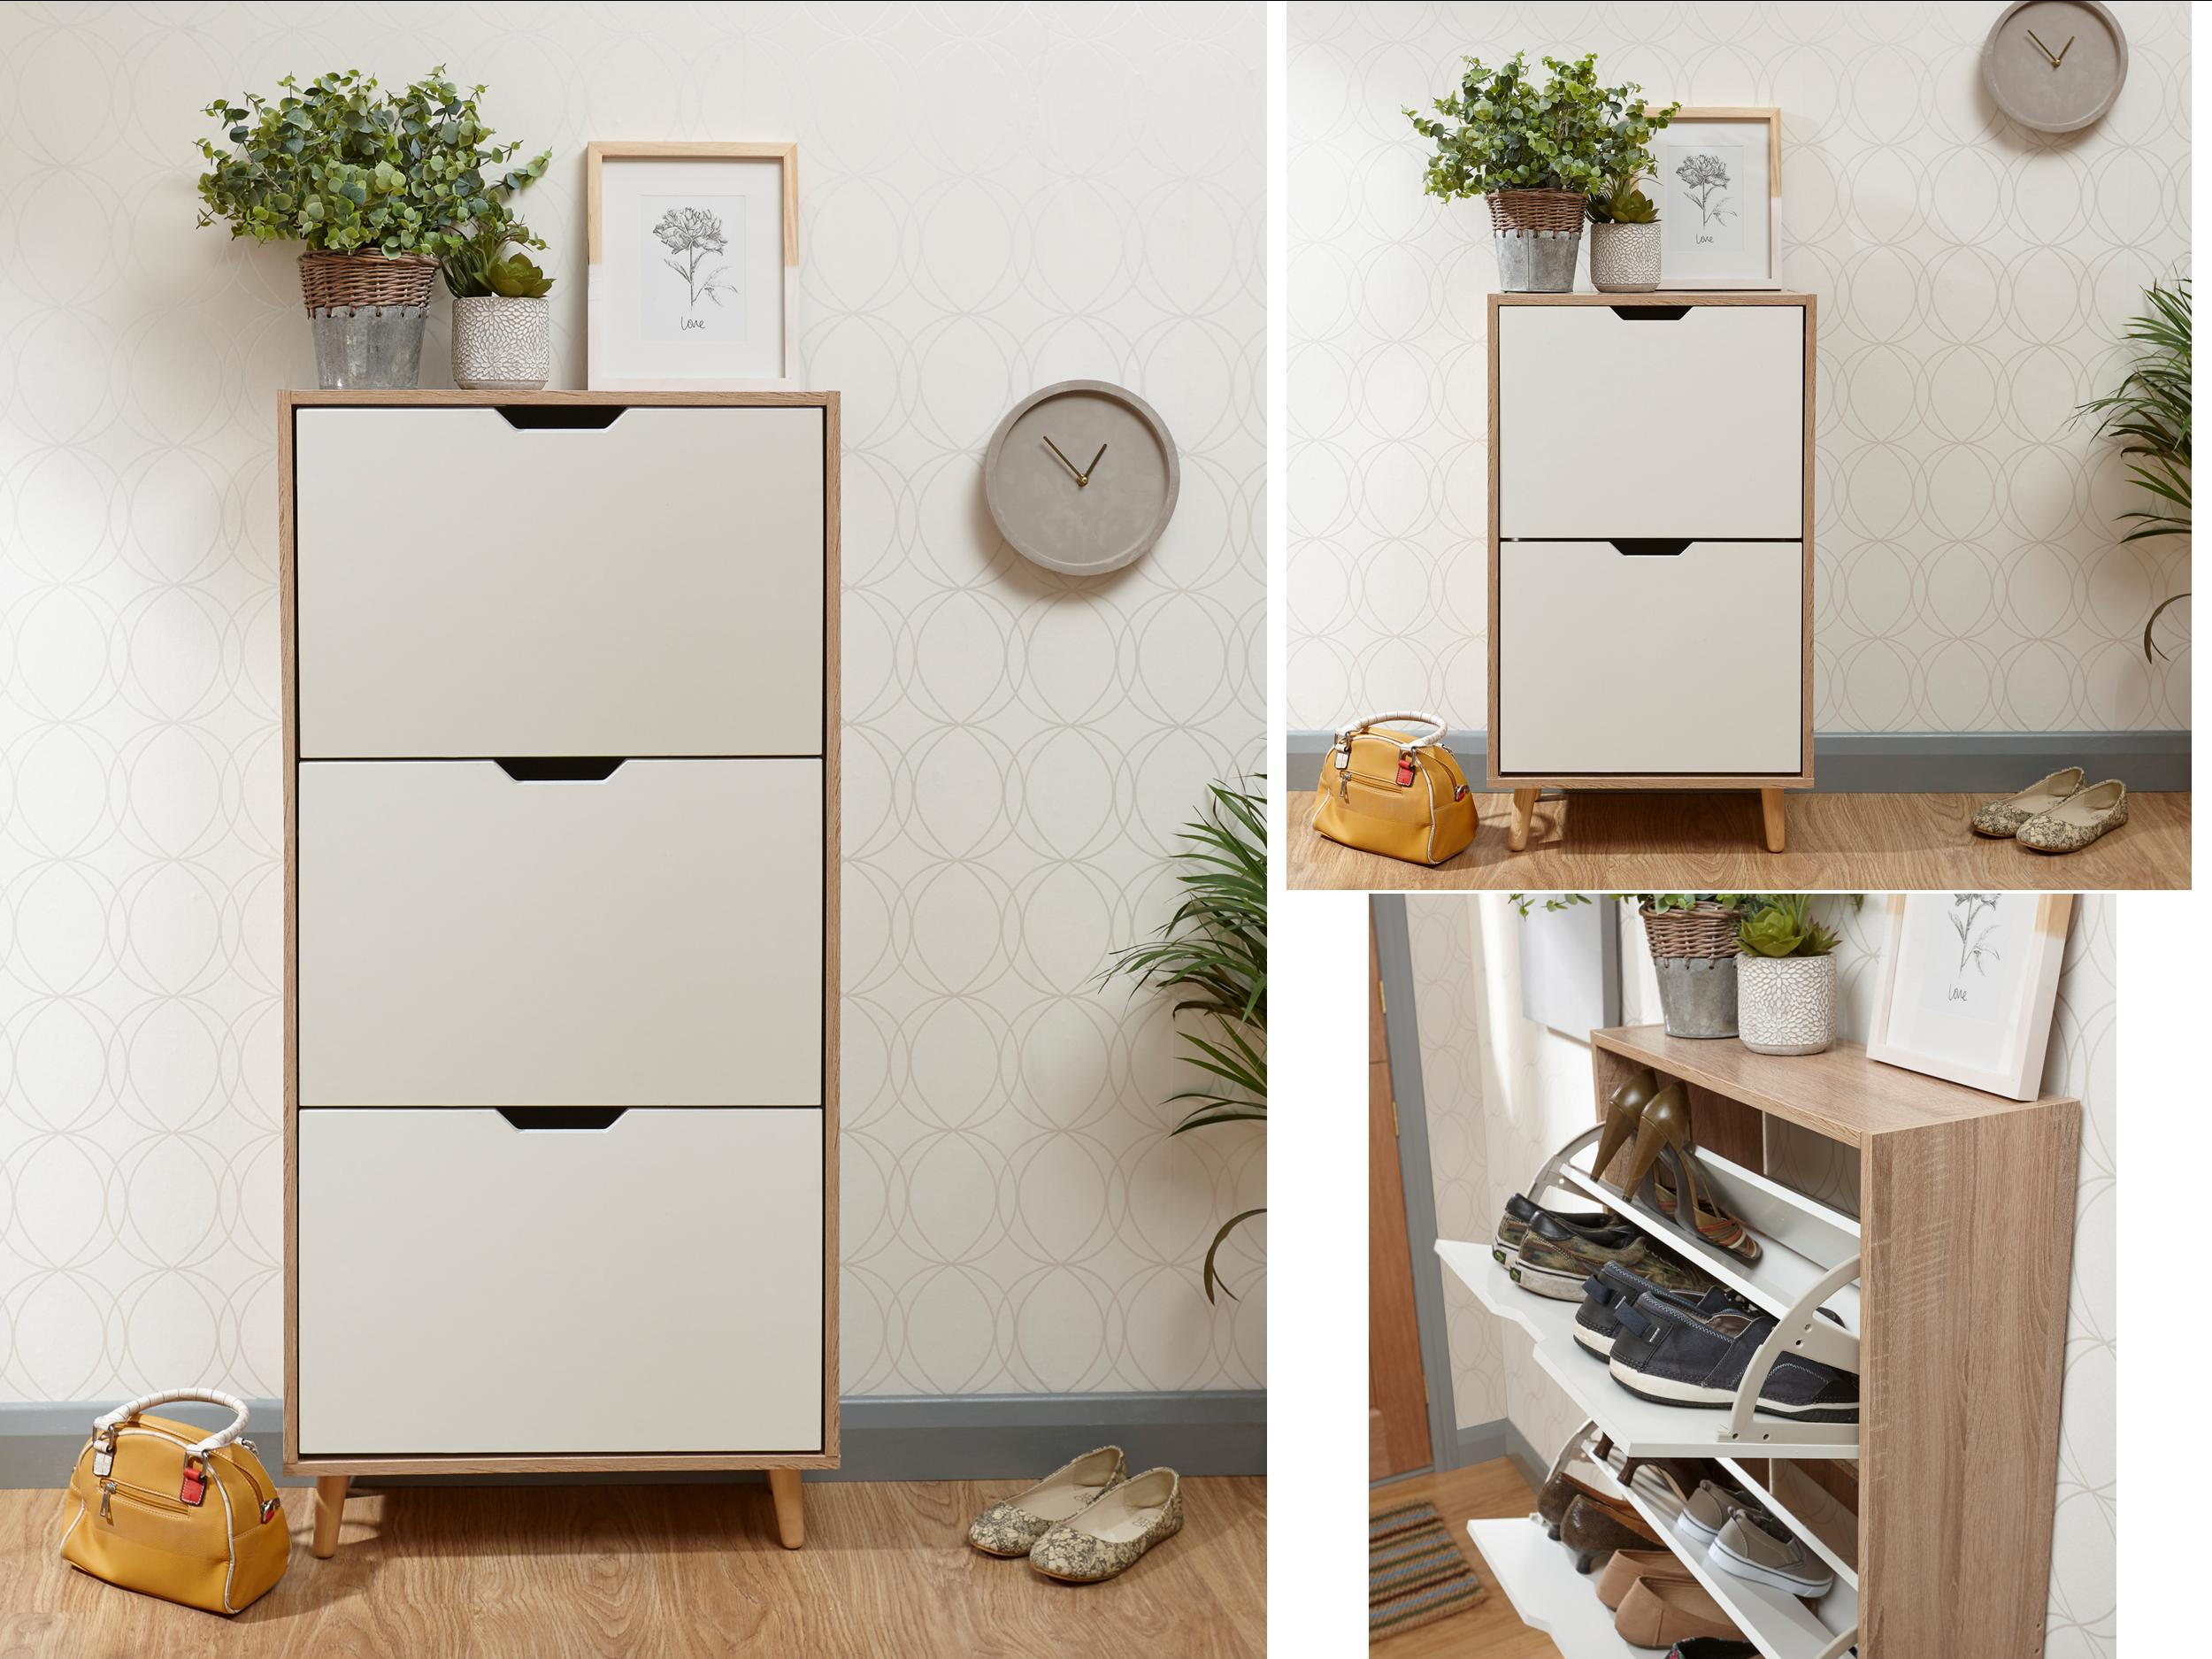 Stockholm 2 & 3 Tier Shoe Cabinets - White & Oak - Retro ...